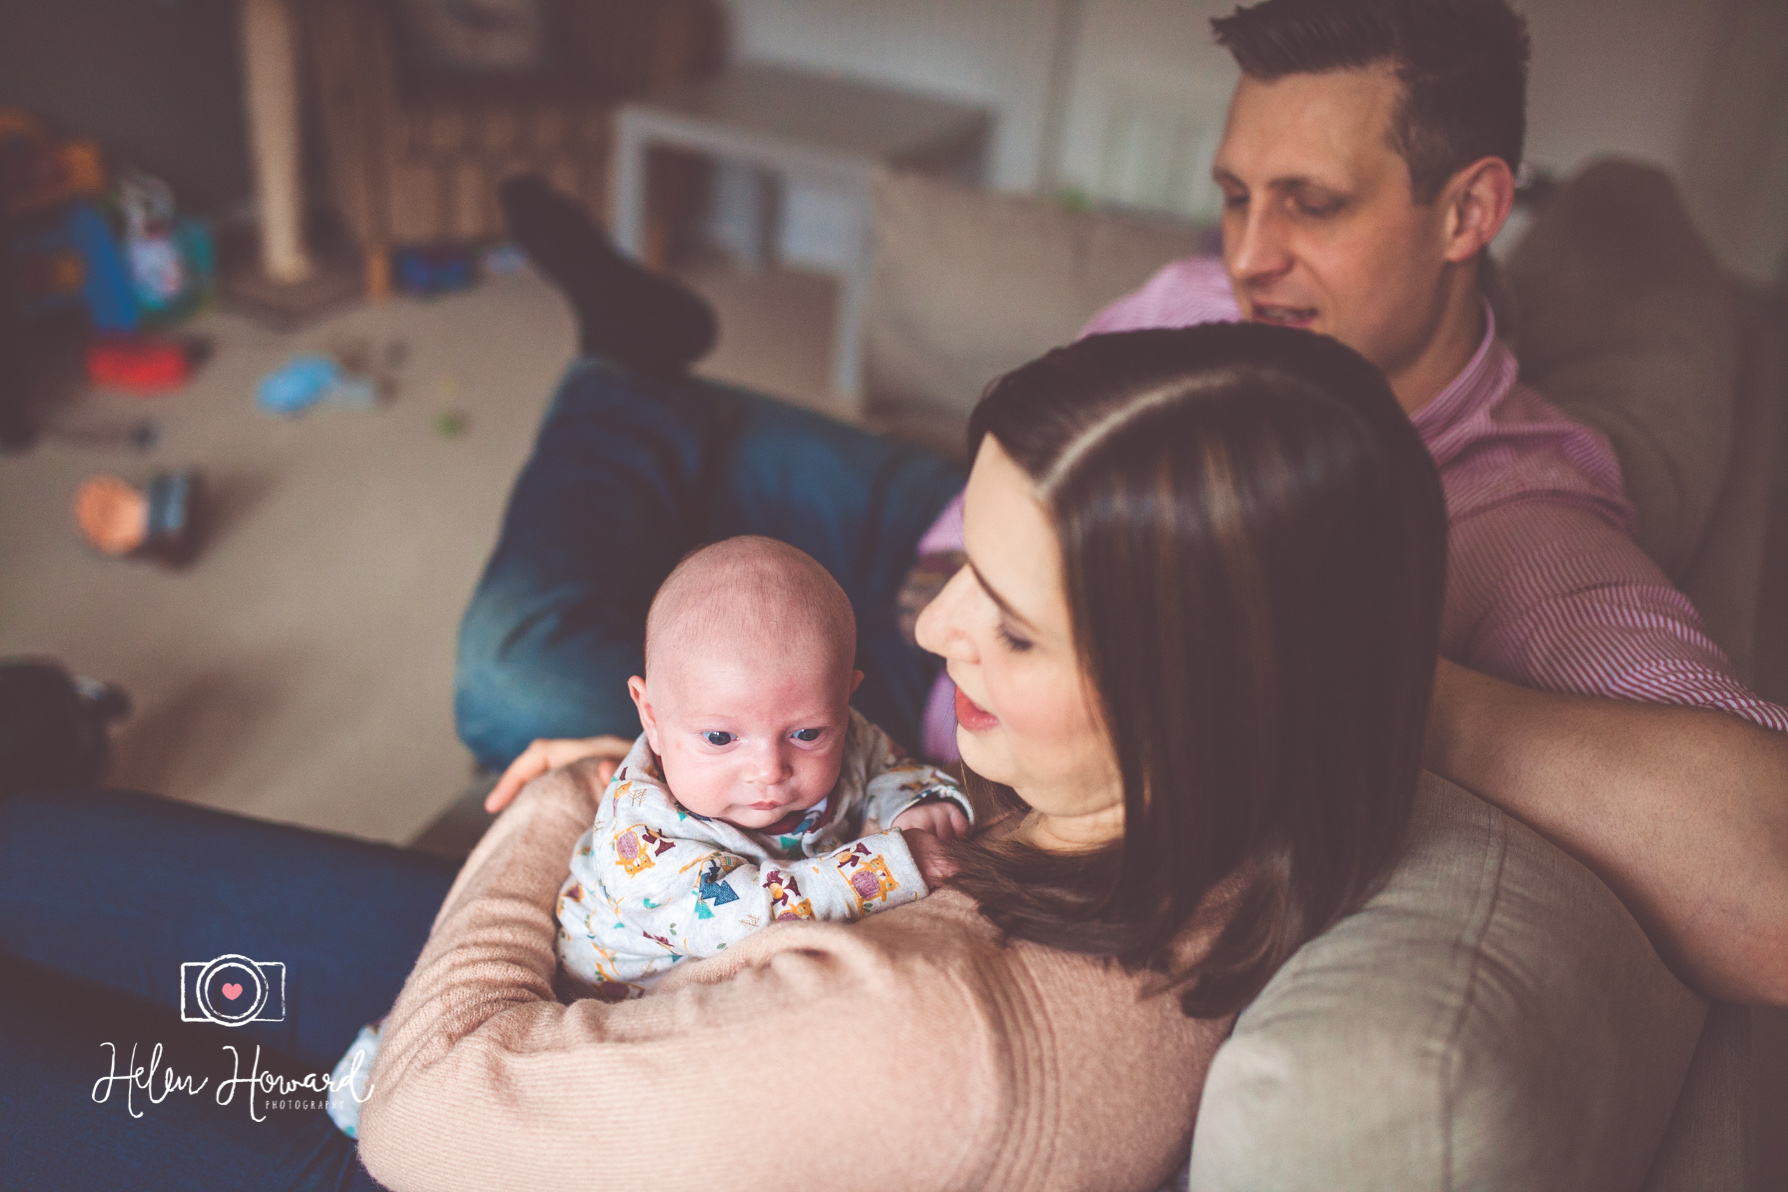 A mother and father with their newborn baby boy portrait photography by Helen Howard